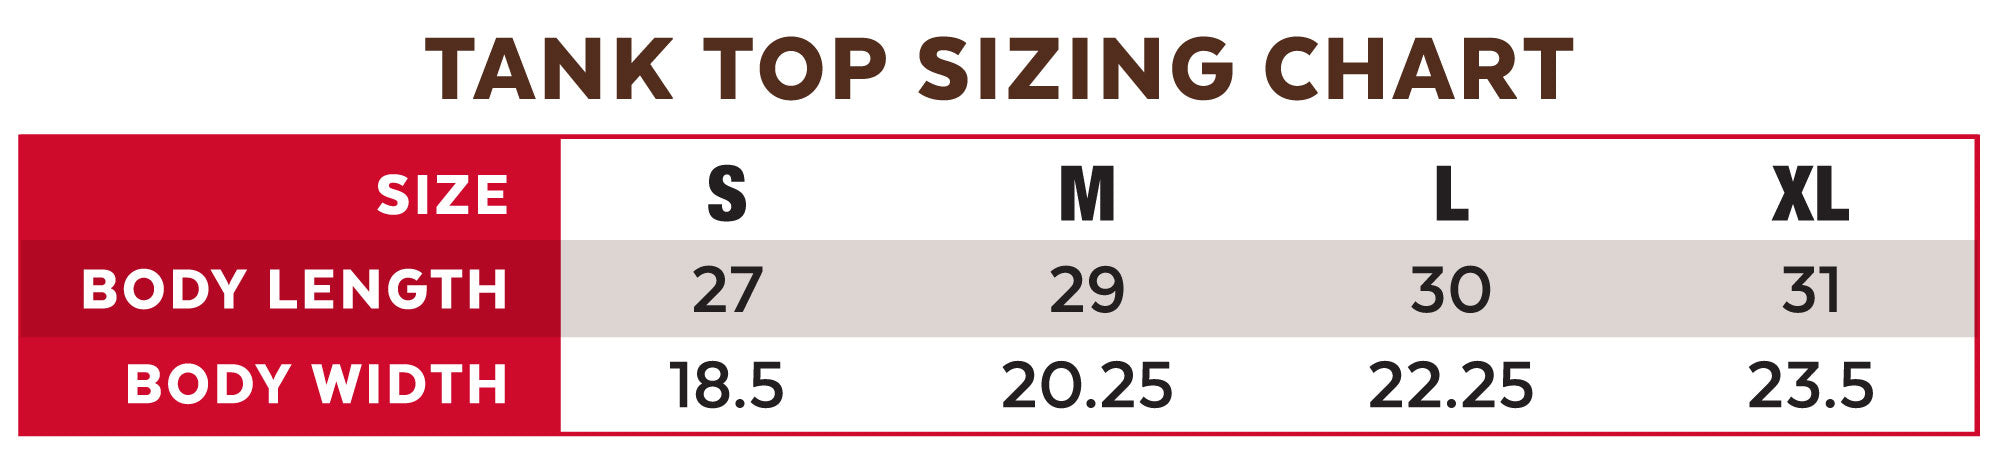 Tank Top Sizing Chart